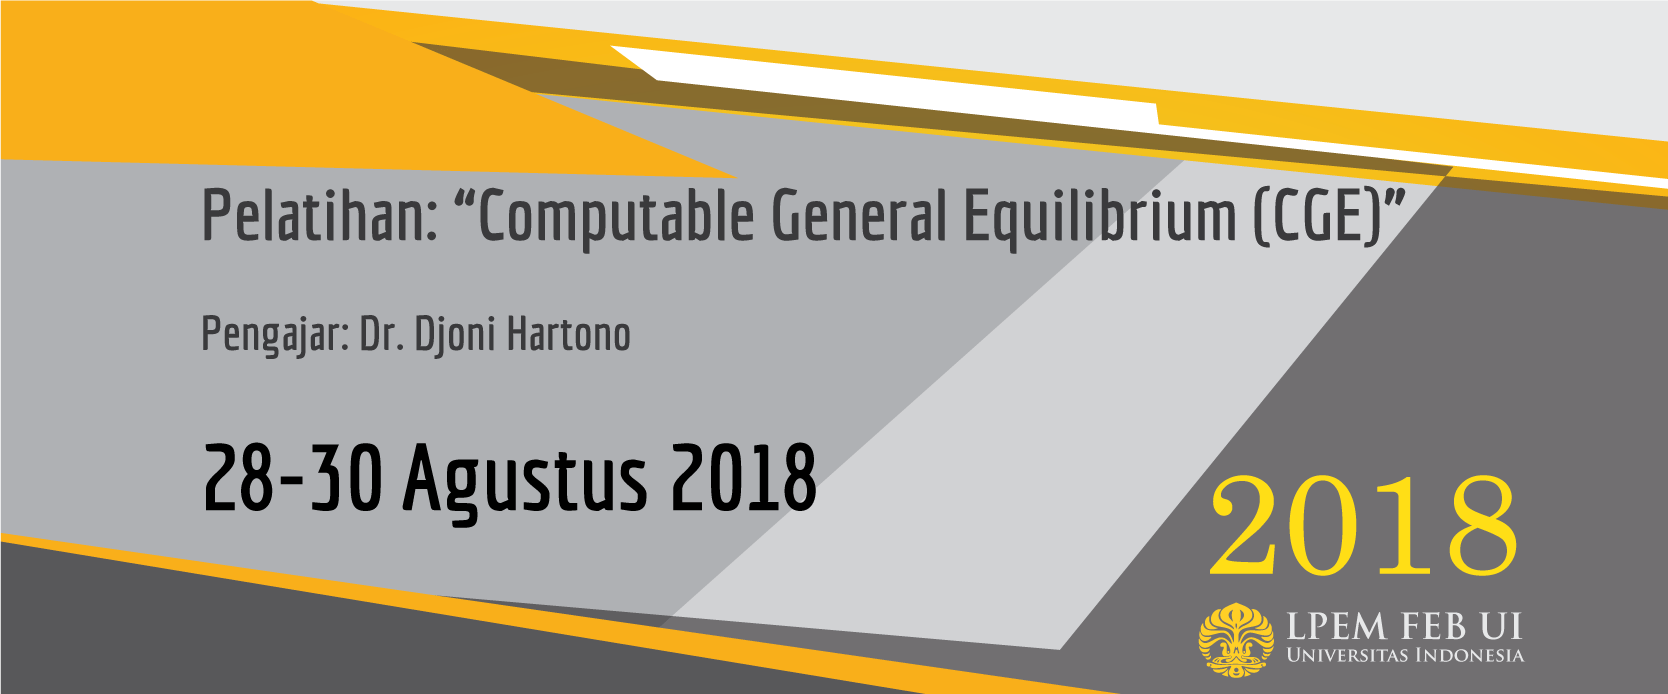 Pelatihan: Computable General Equilibrium (CGE)